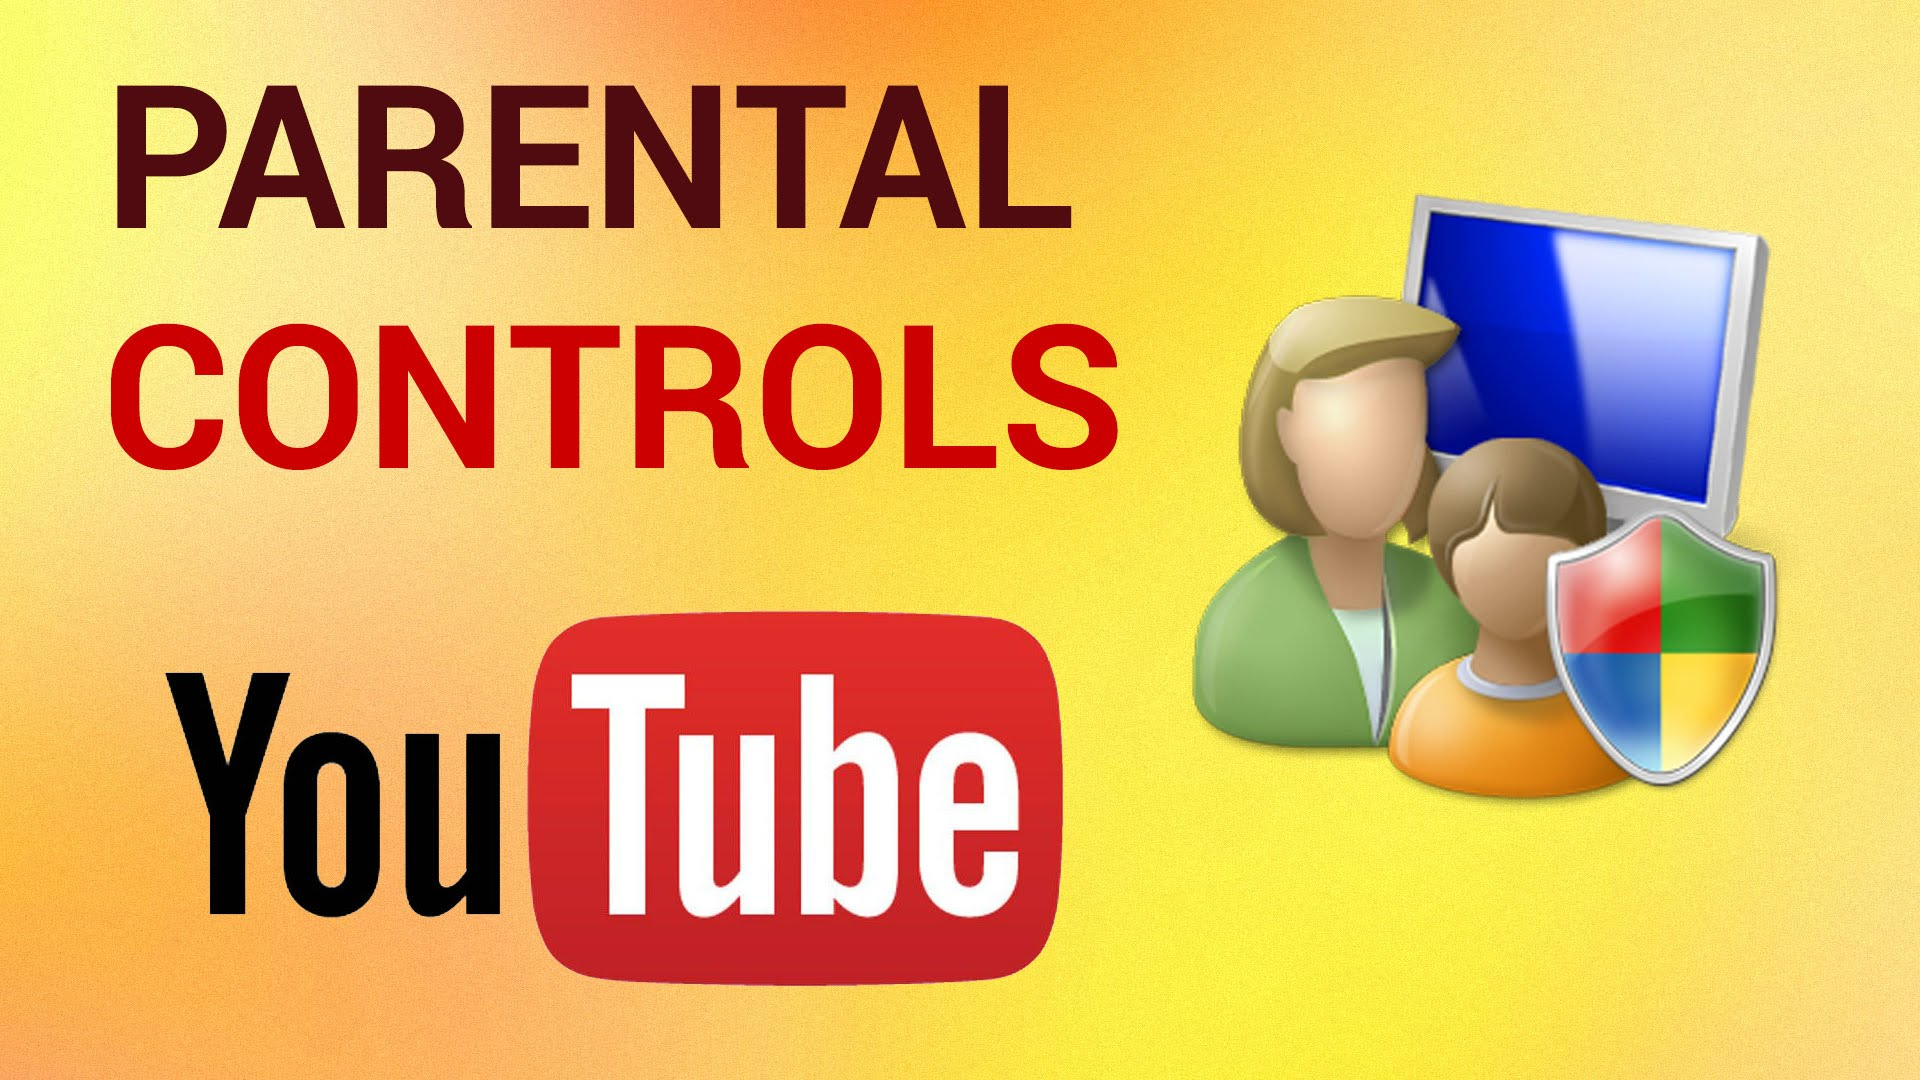 Parental Control you tube